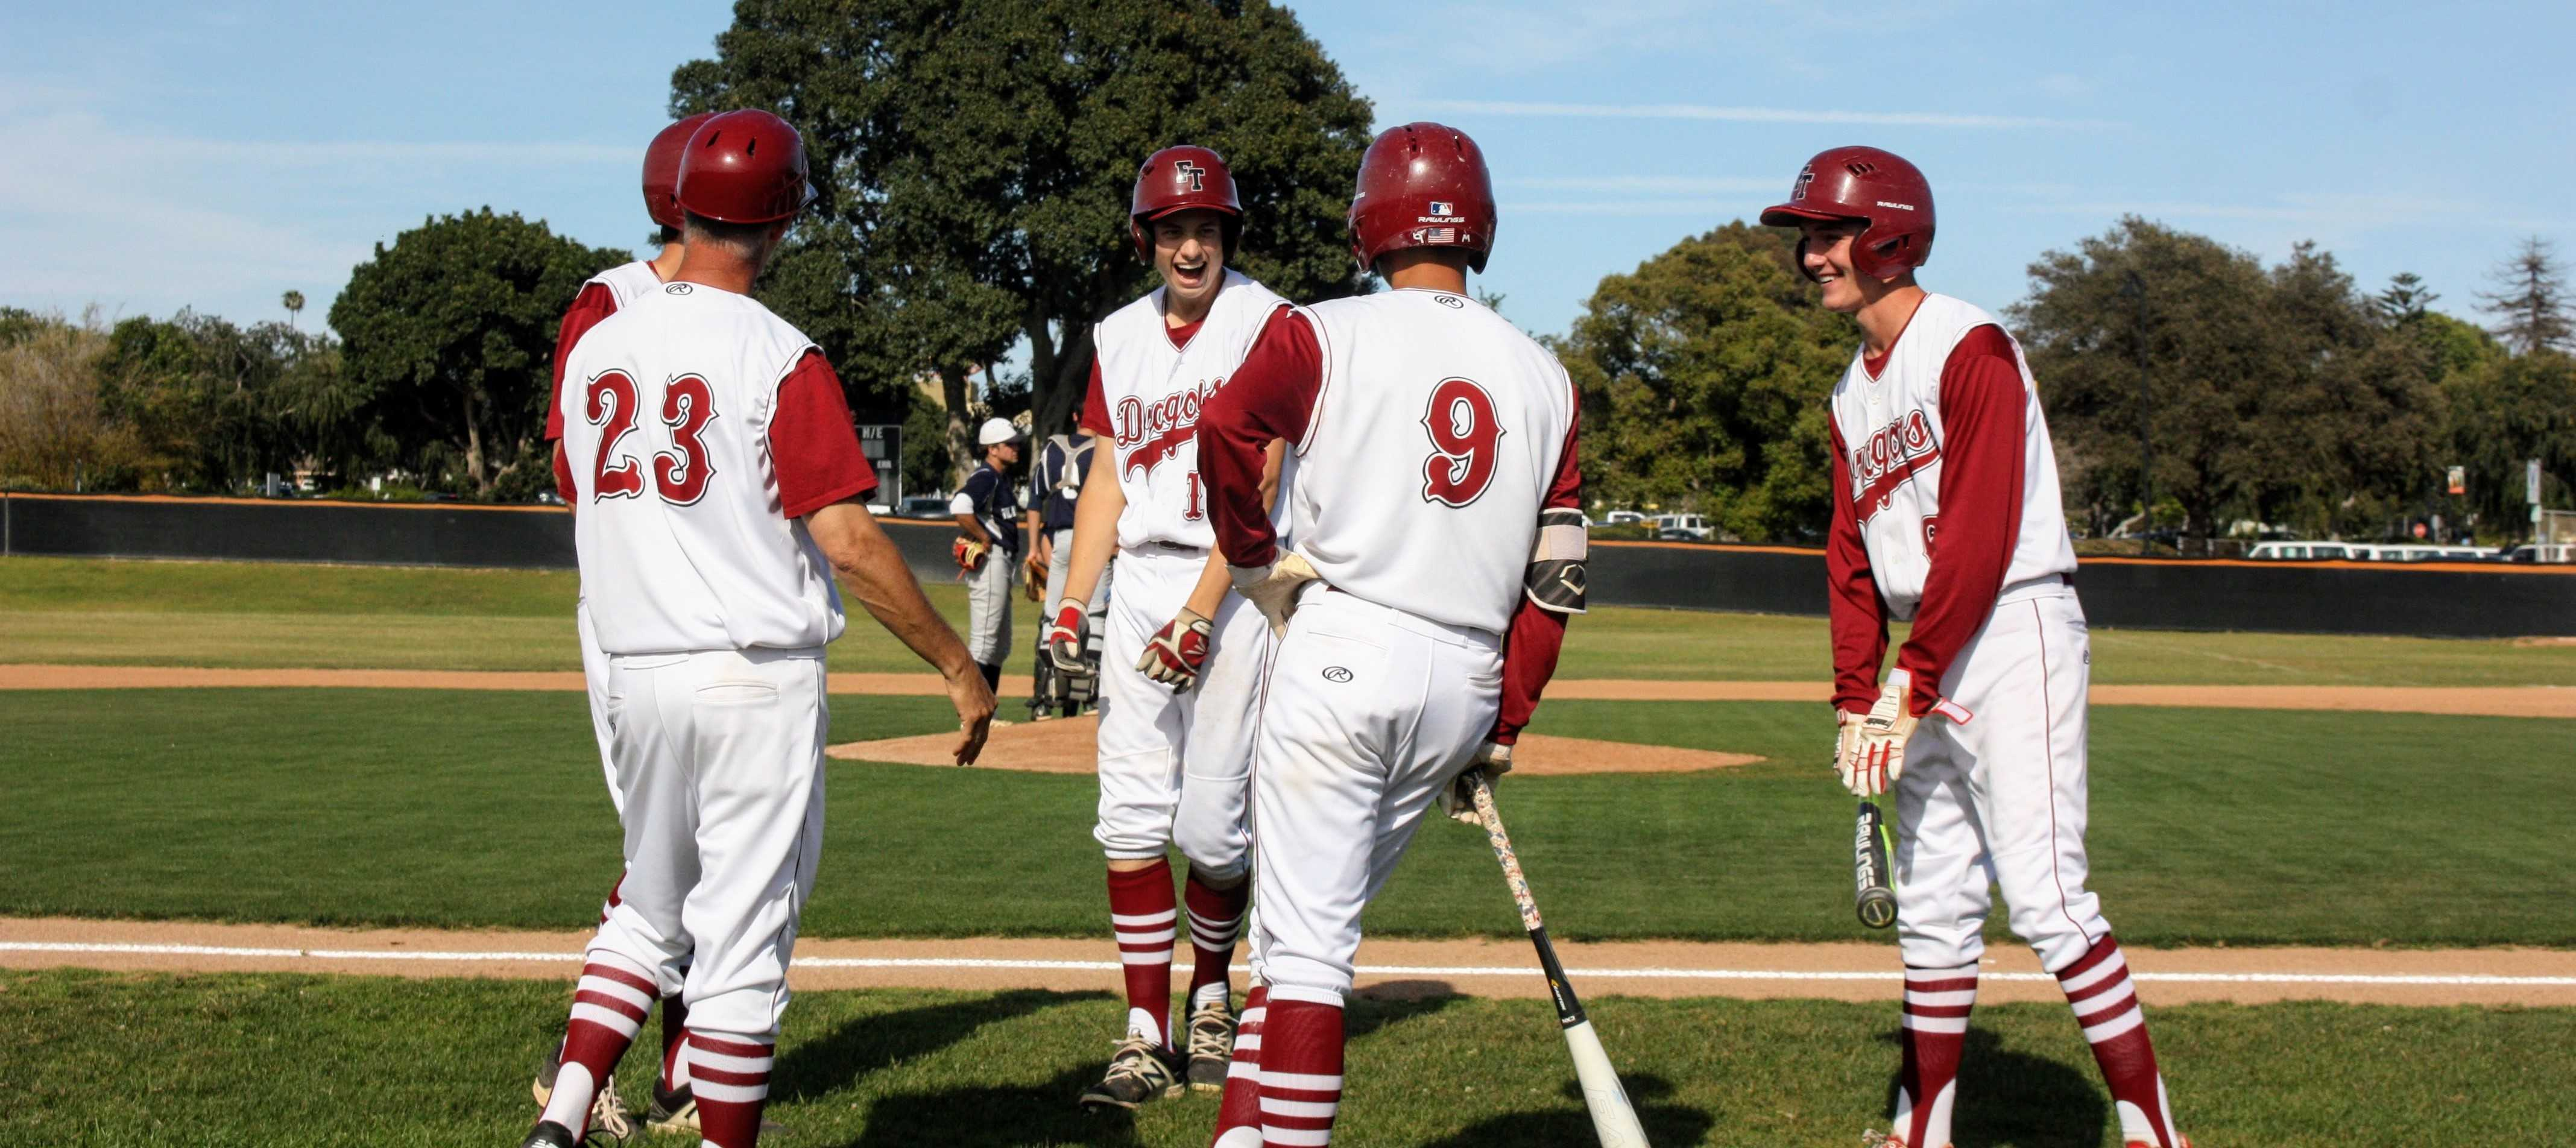 Boys' baseball senior night highlighted by shutout win vs. Villanova